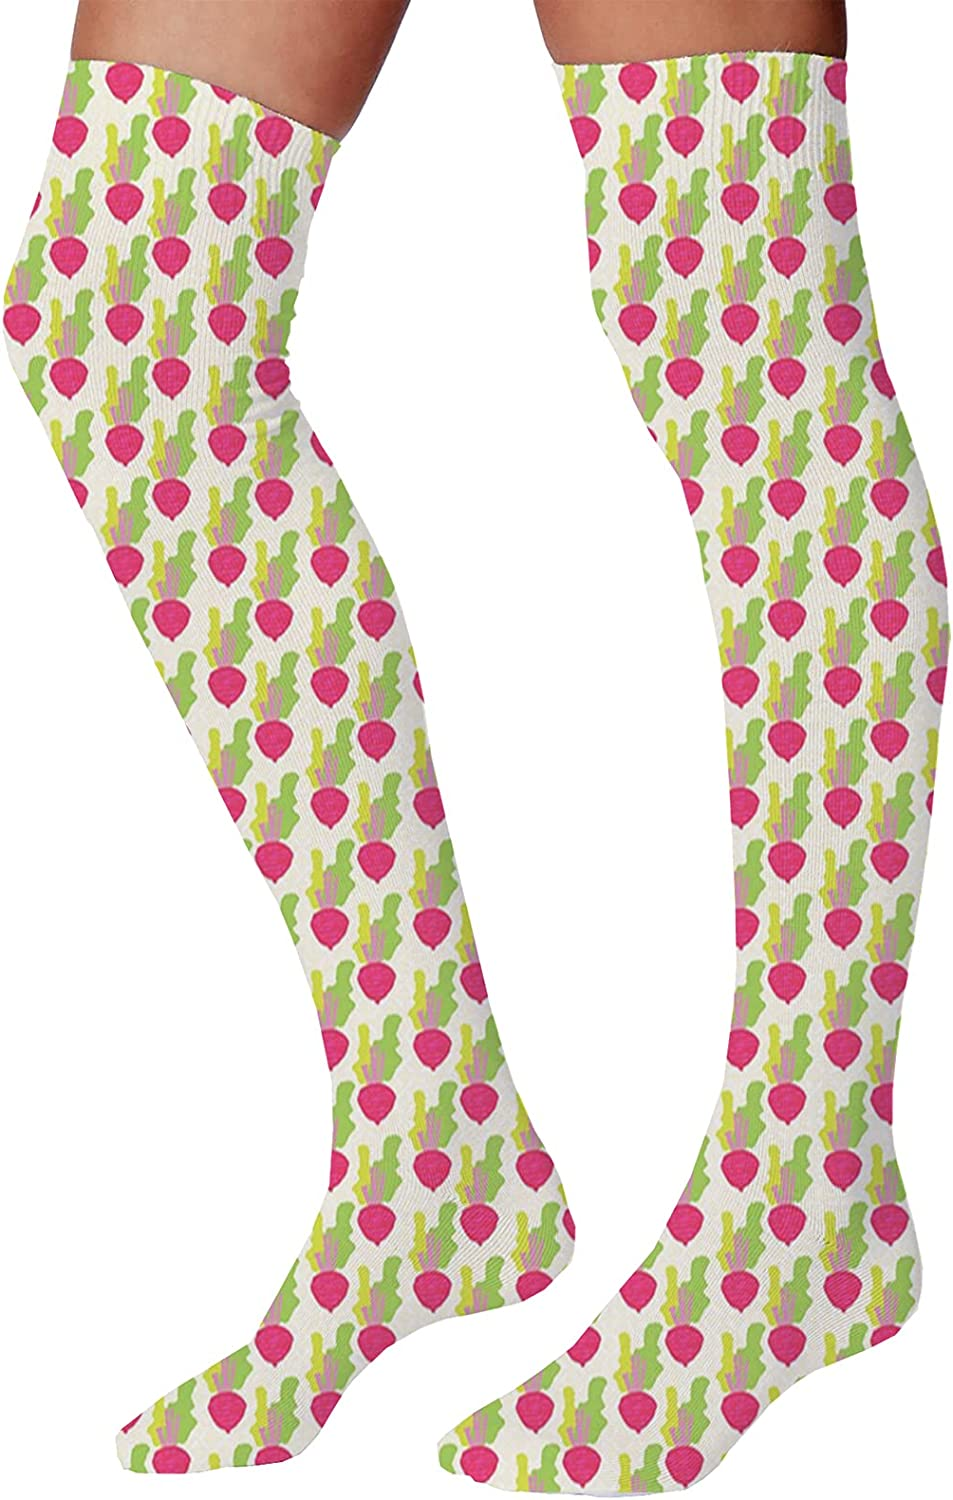 Men's and Women's Fun Socks,Abstract Curled Leaves Artistic Natural Flower Arrangement